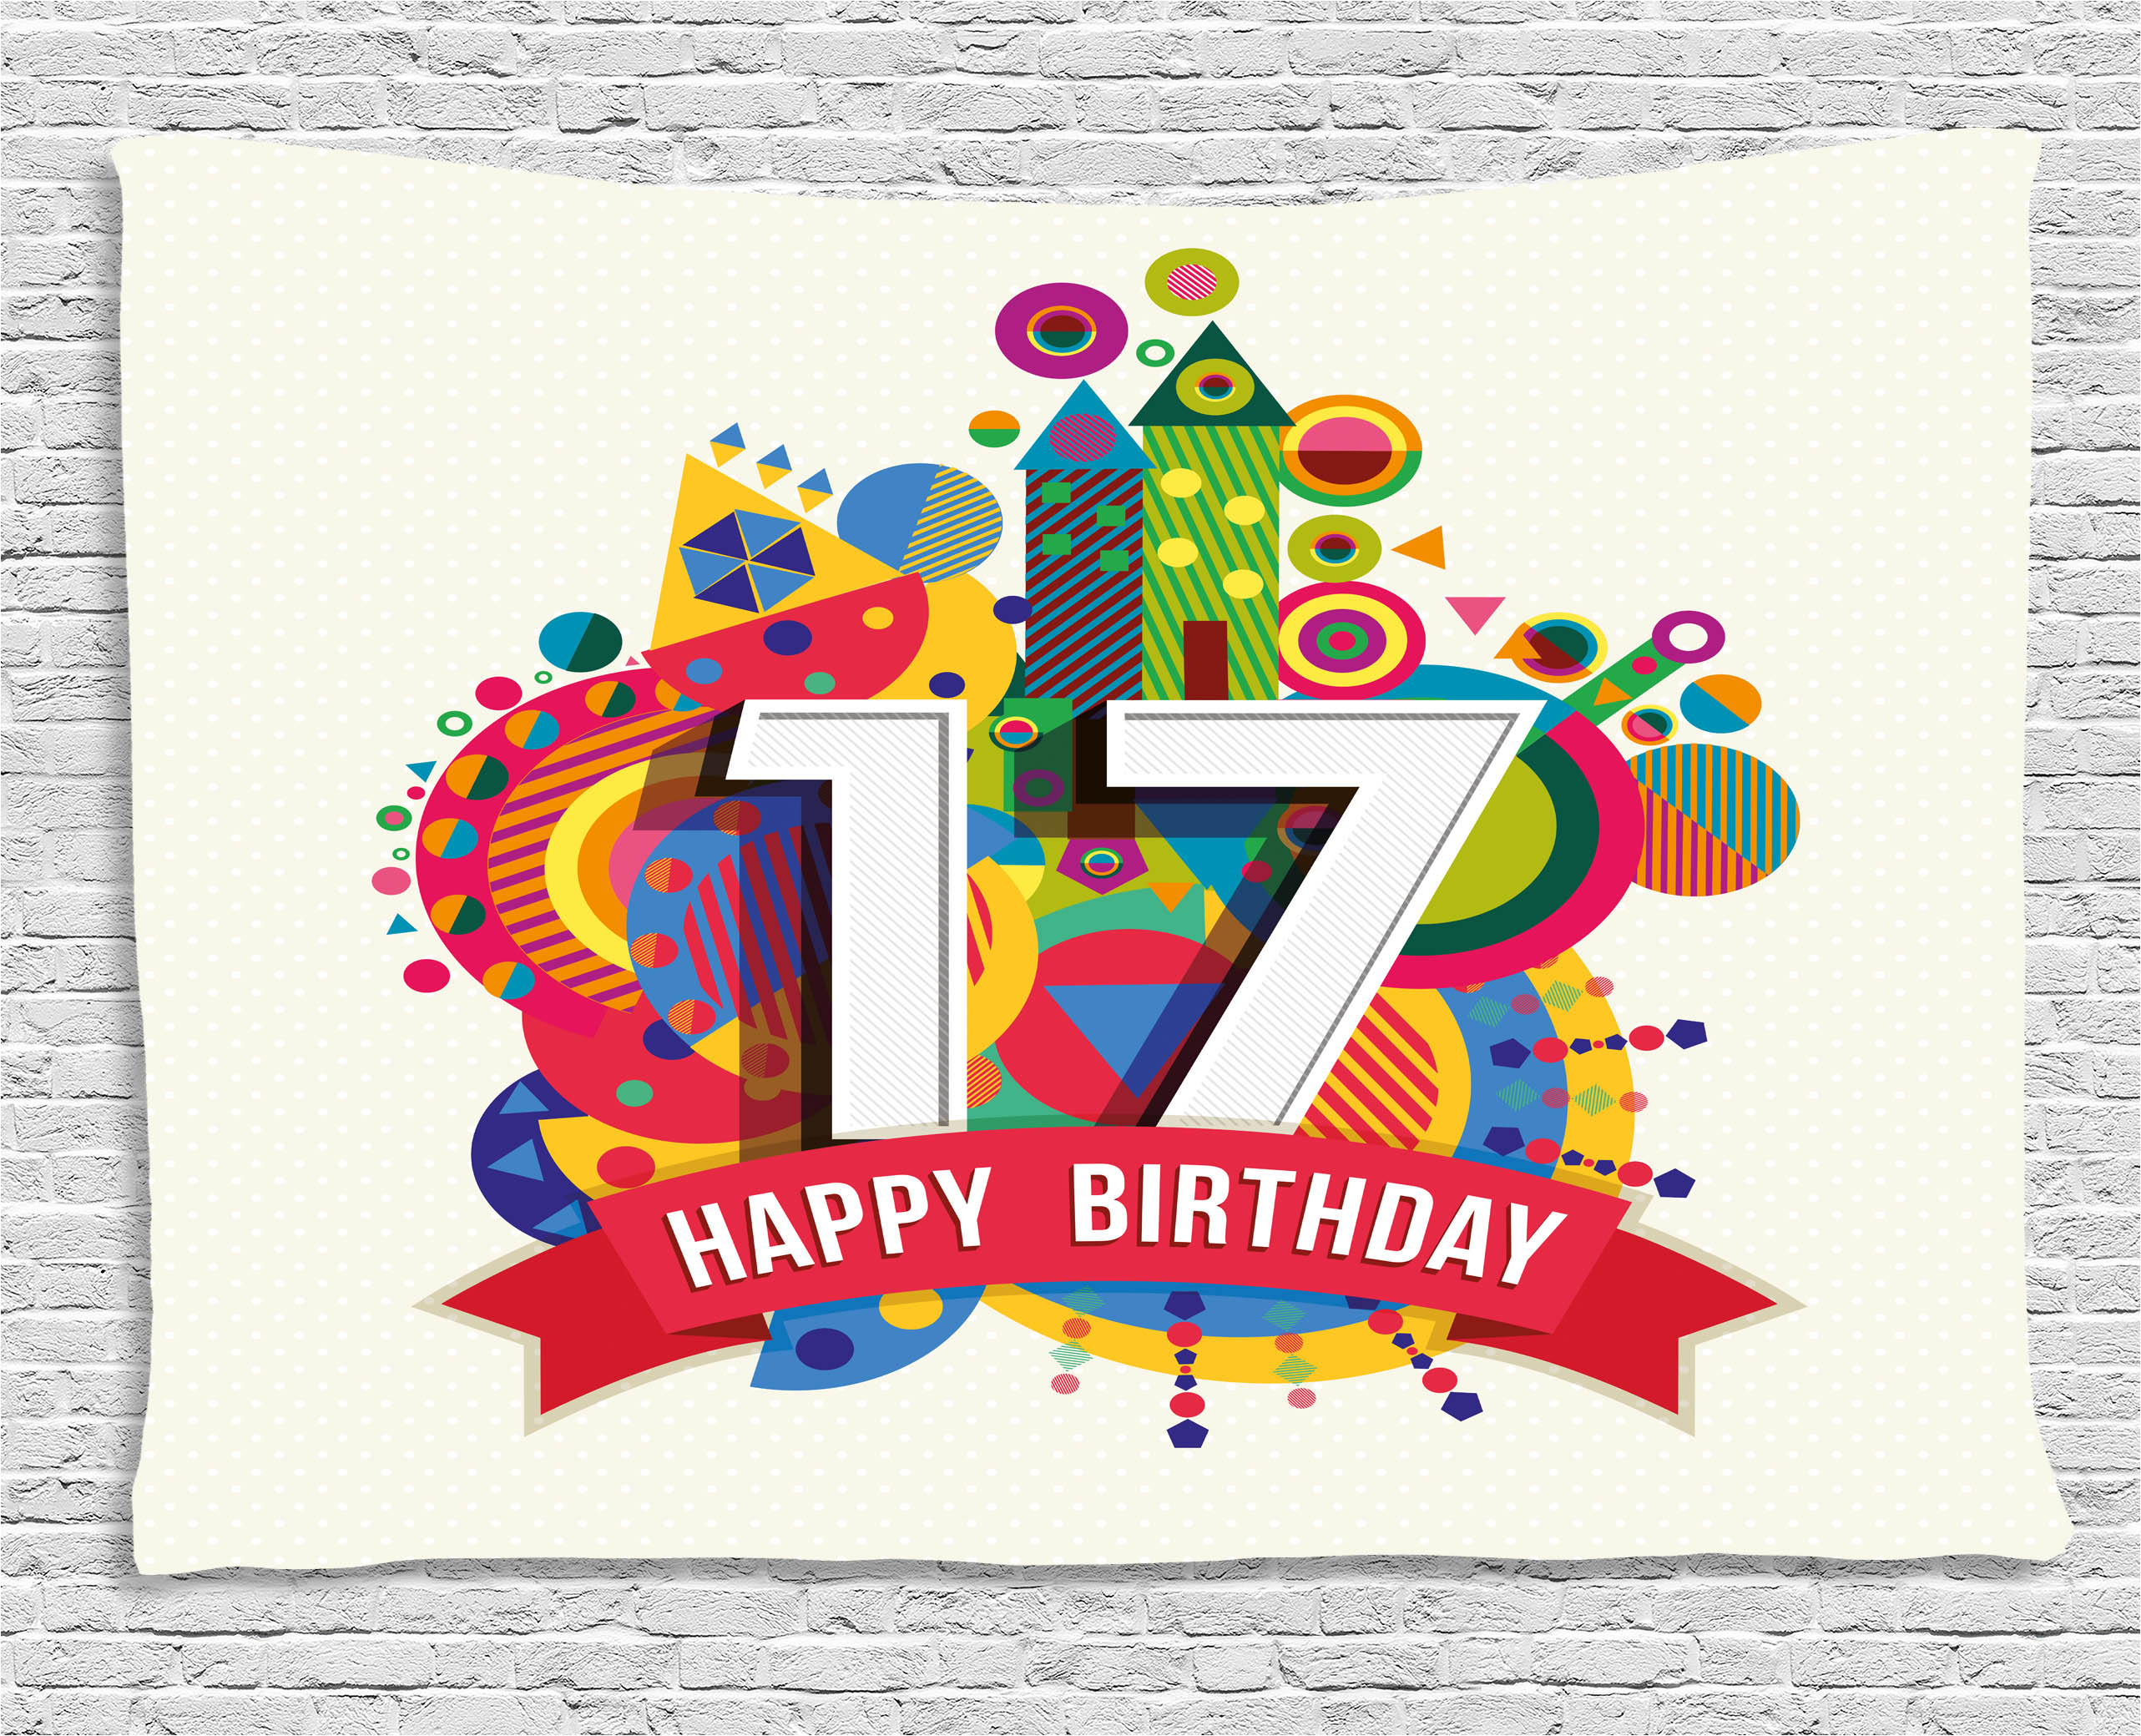 17th Birthday Decorations Tapestry Sweet Seventeen Party With Geometric Castle Boat And Shapes Image Wall Hanging For Bedroom Living Room Dorm Decor